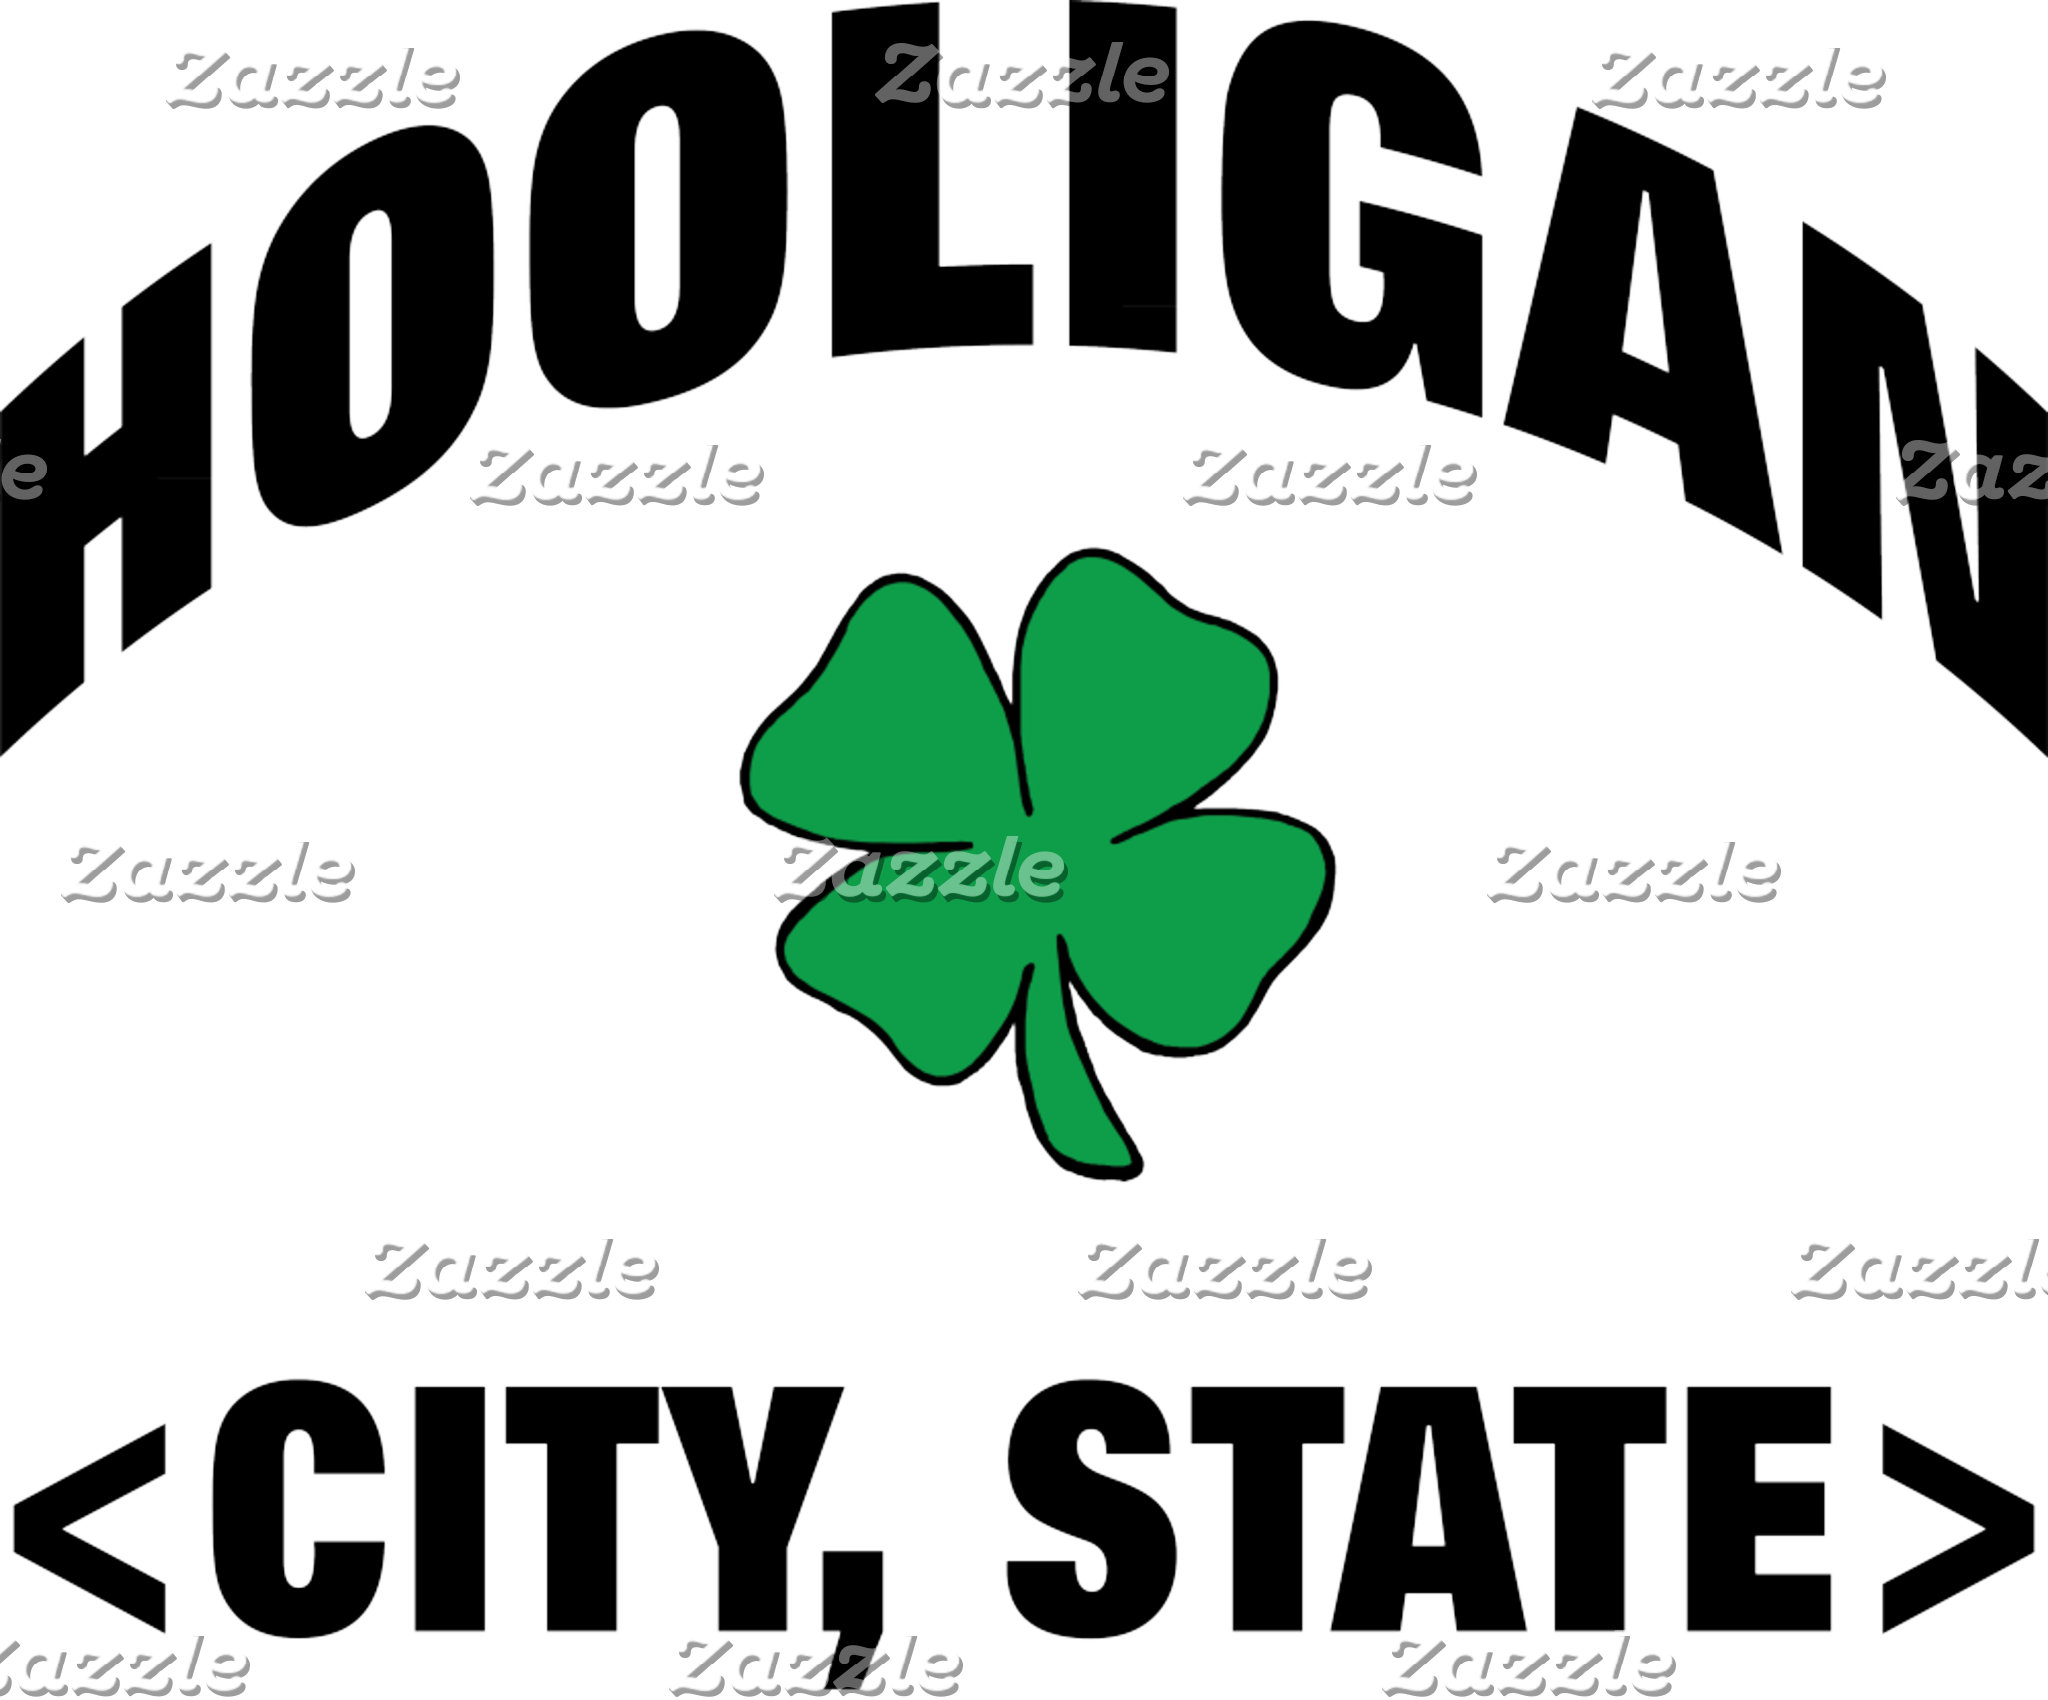 A Personalized Irish Hooligan T-Shirt or Gift